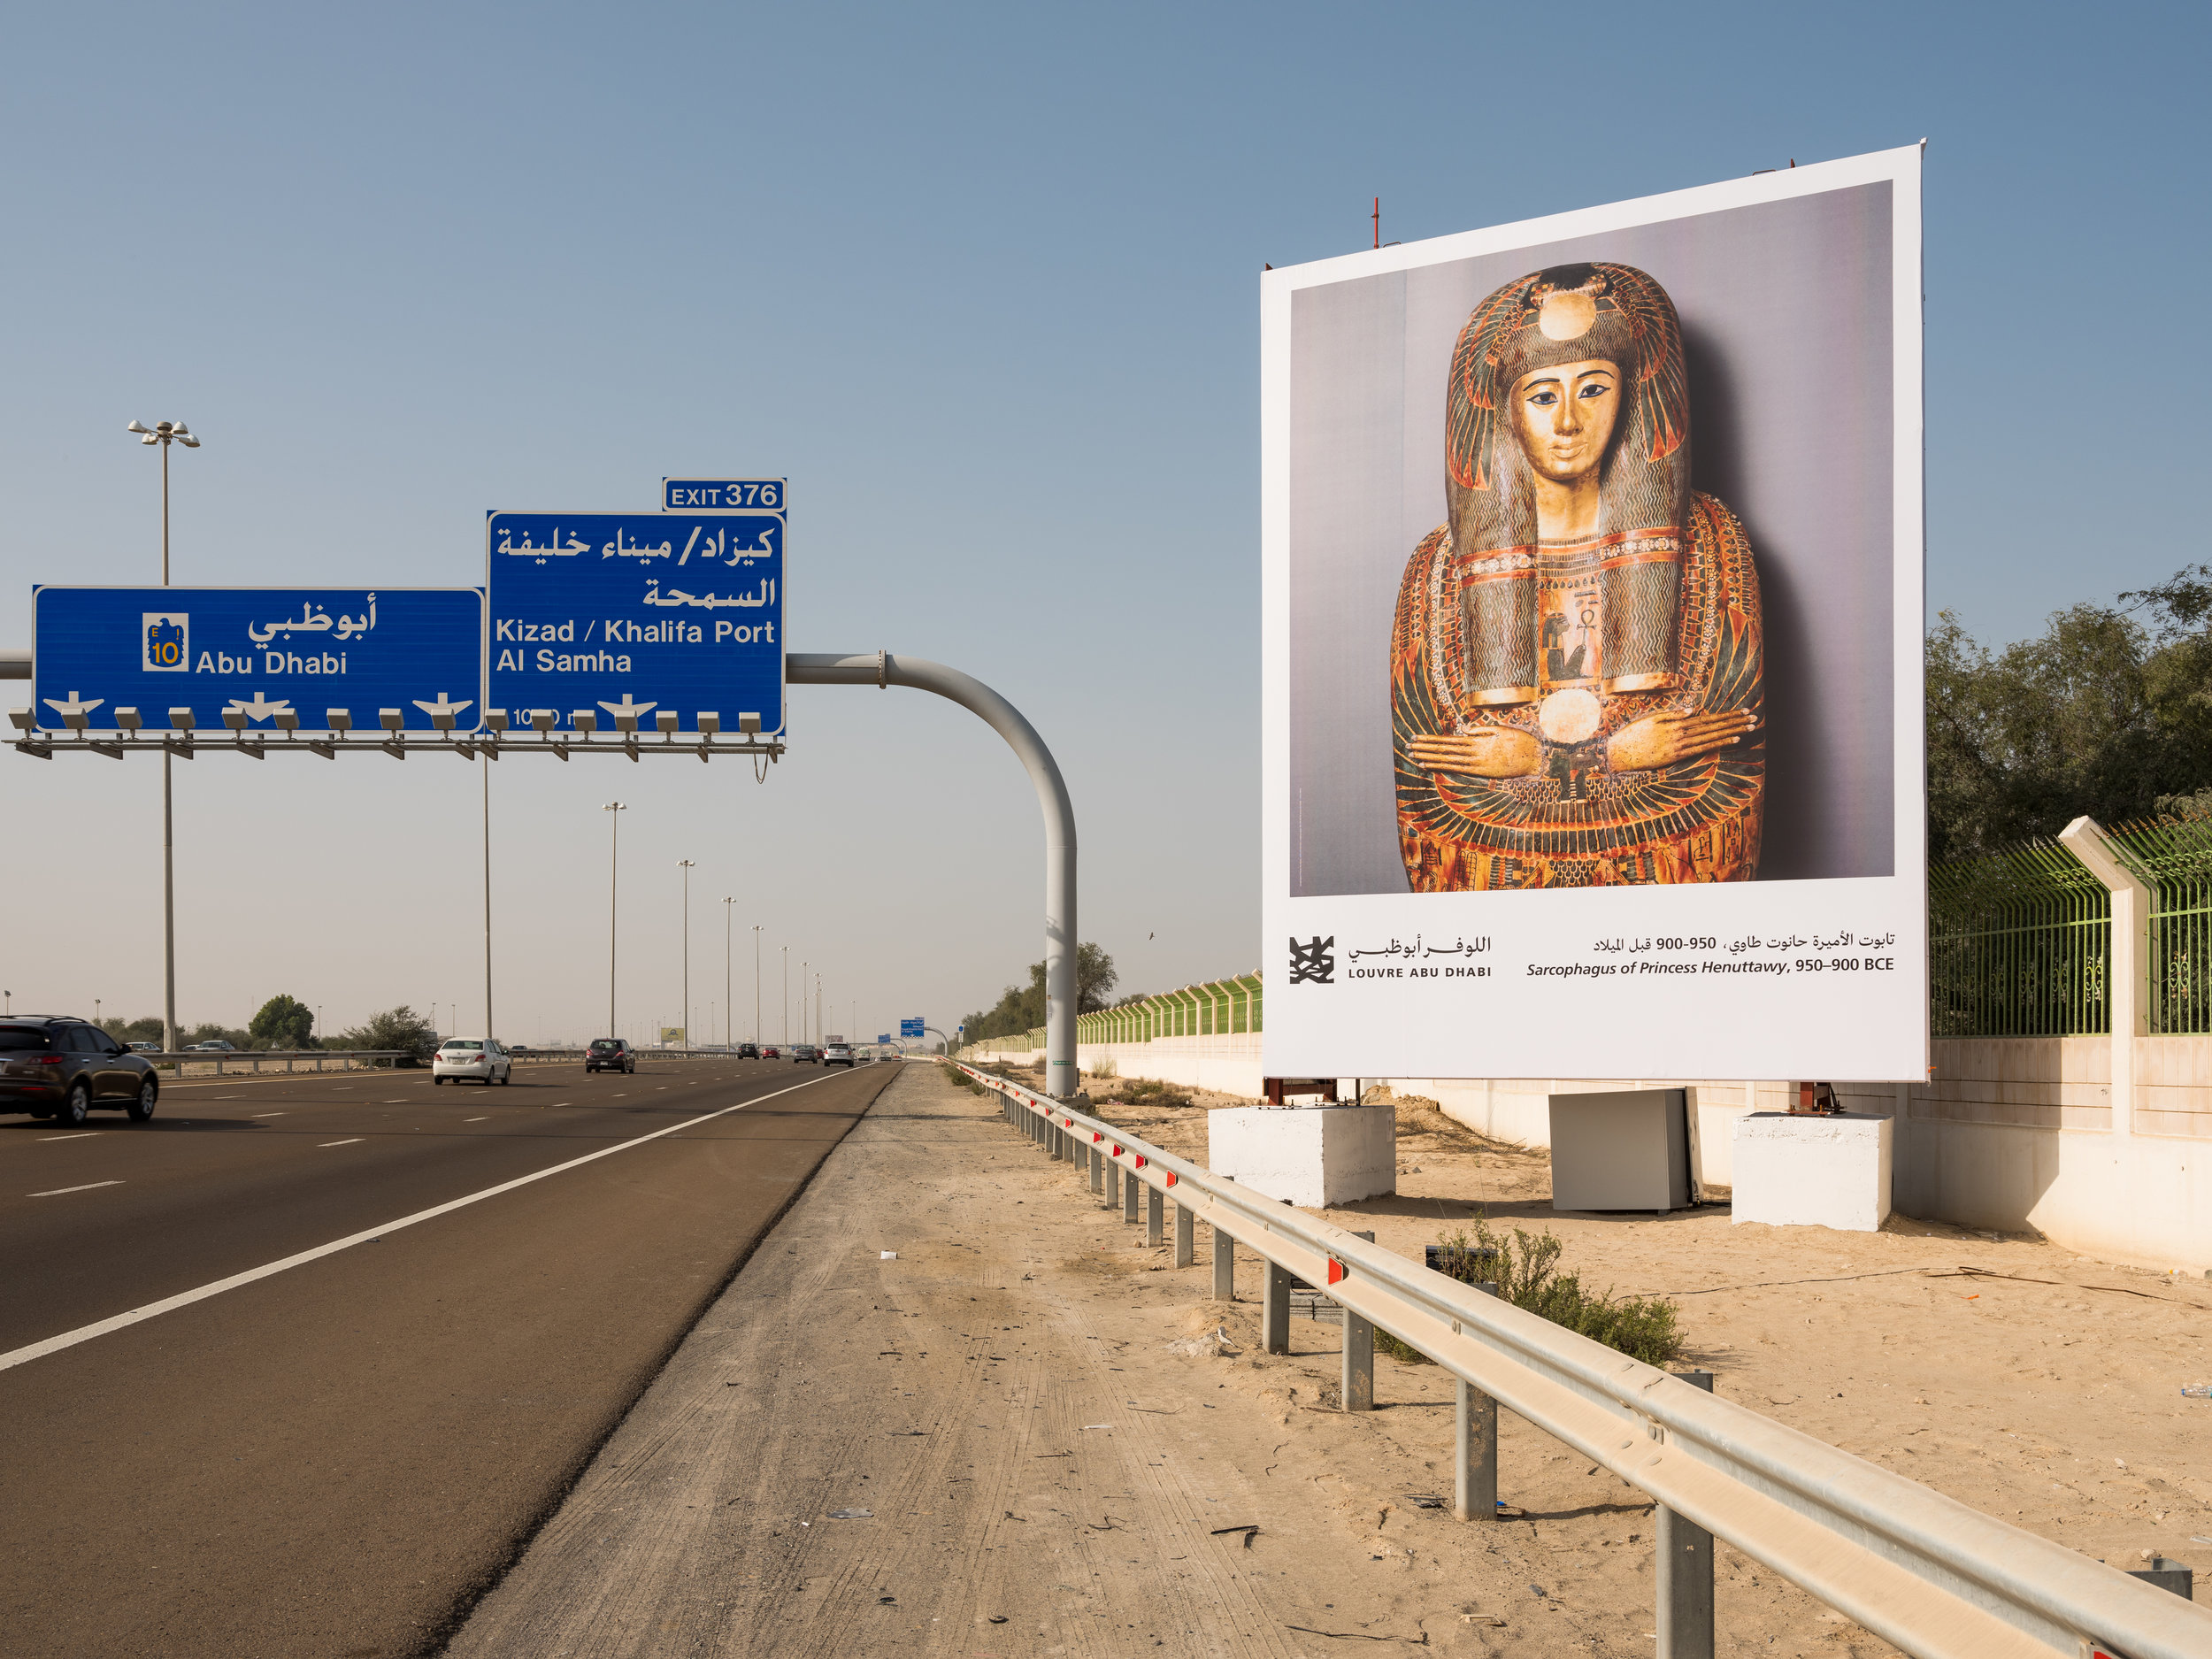 The  Sarcophagus of Princess Henuttawy  from Ancient Egypt is another of the 10 billboards launched to make the drive to the museum more interesting as well as to mark Innovation Month in the UAE. Image courtesy of Louvre Abu Dhabi